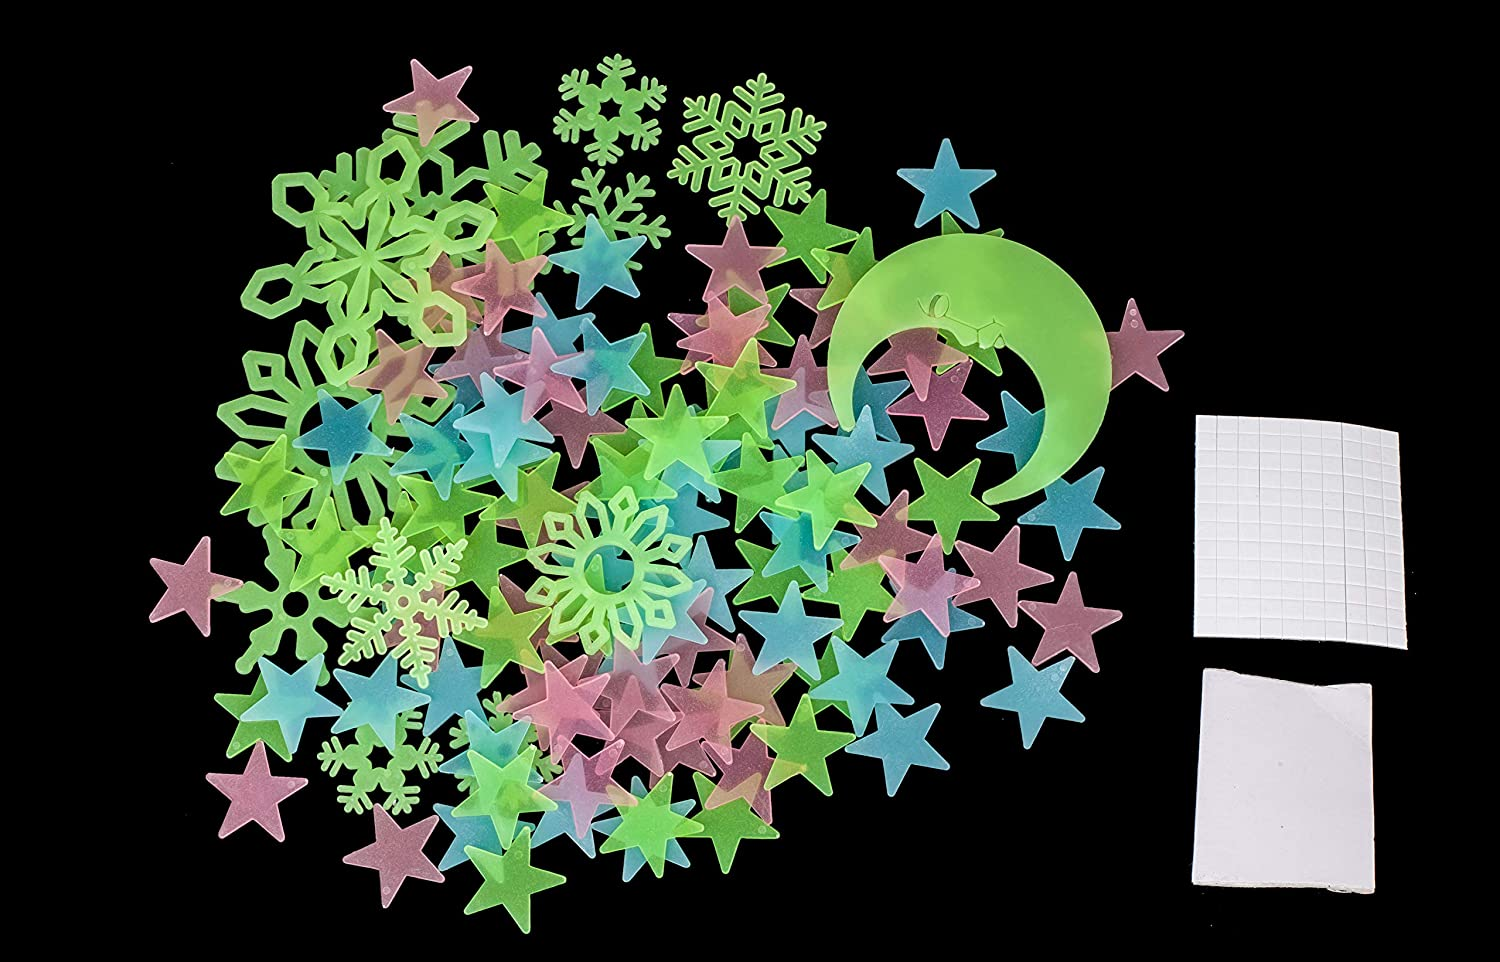 112pcs Stars Luminous Stickers Glow in The Dark Sticker Decals Plastic Noctilucan for Kids Baby Rooms Colorful Fluorescent Toy